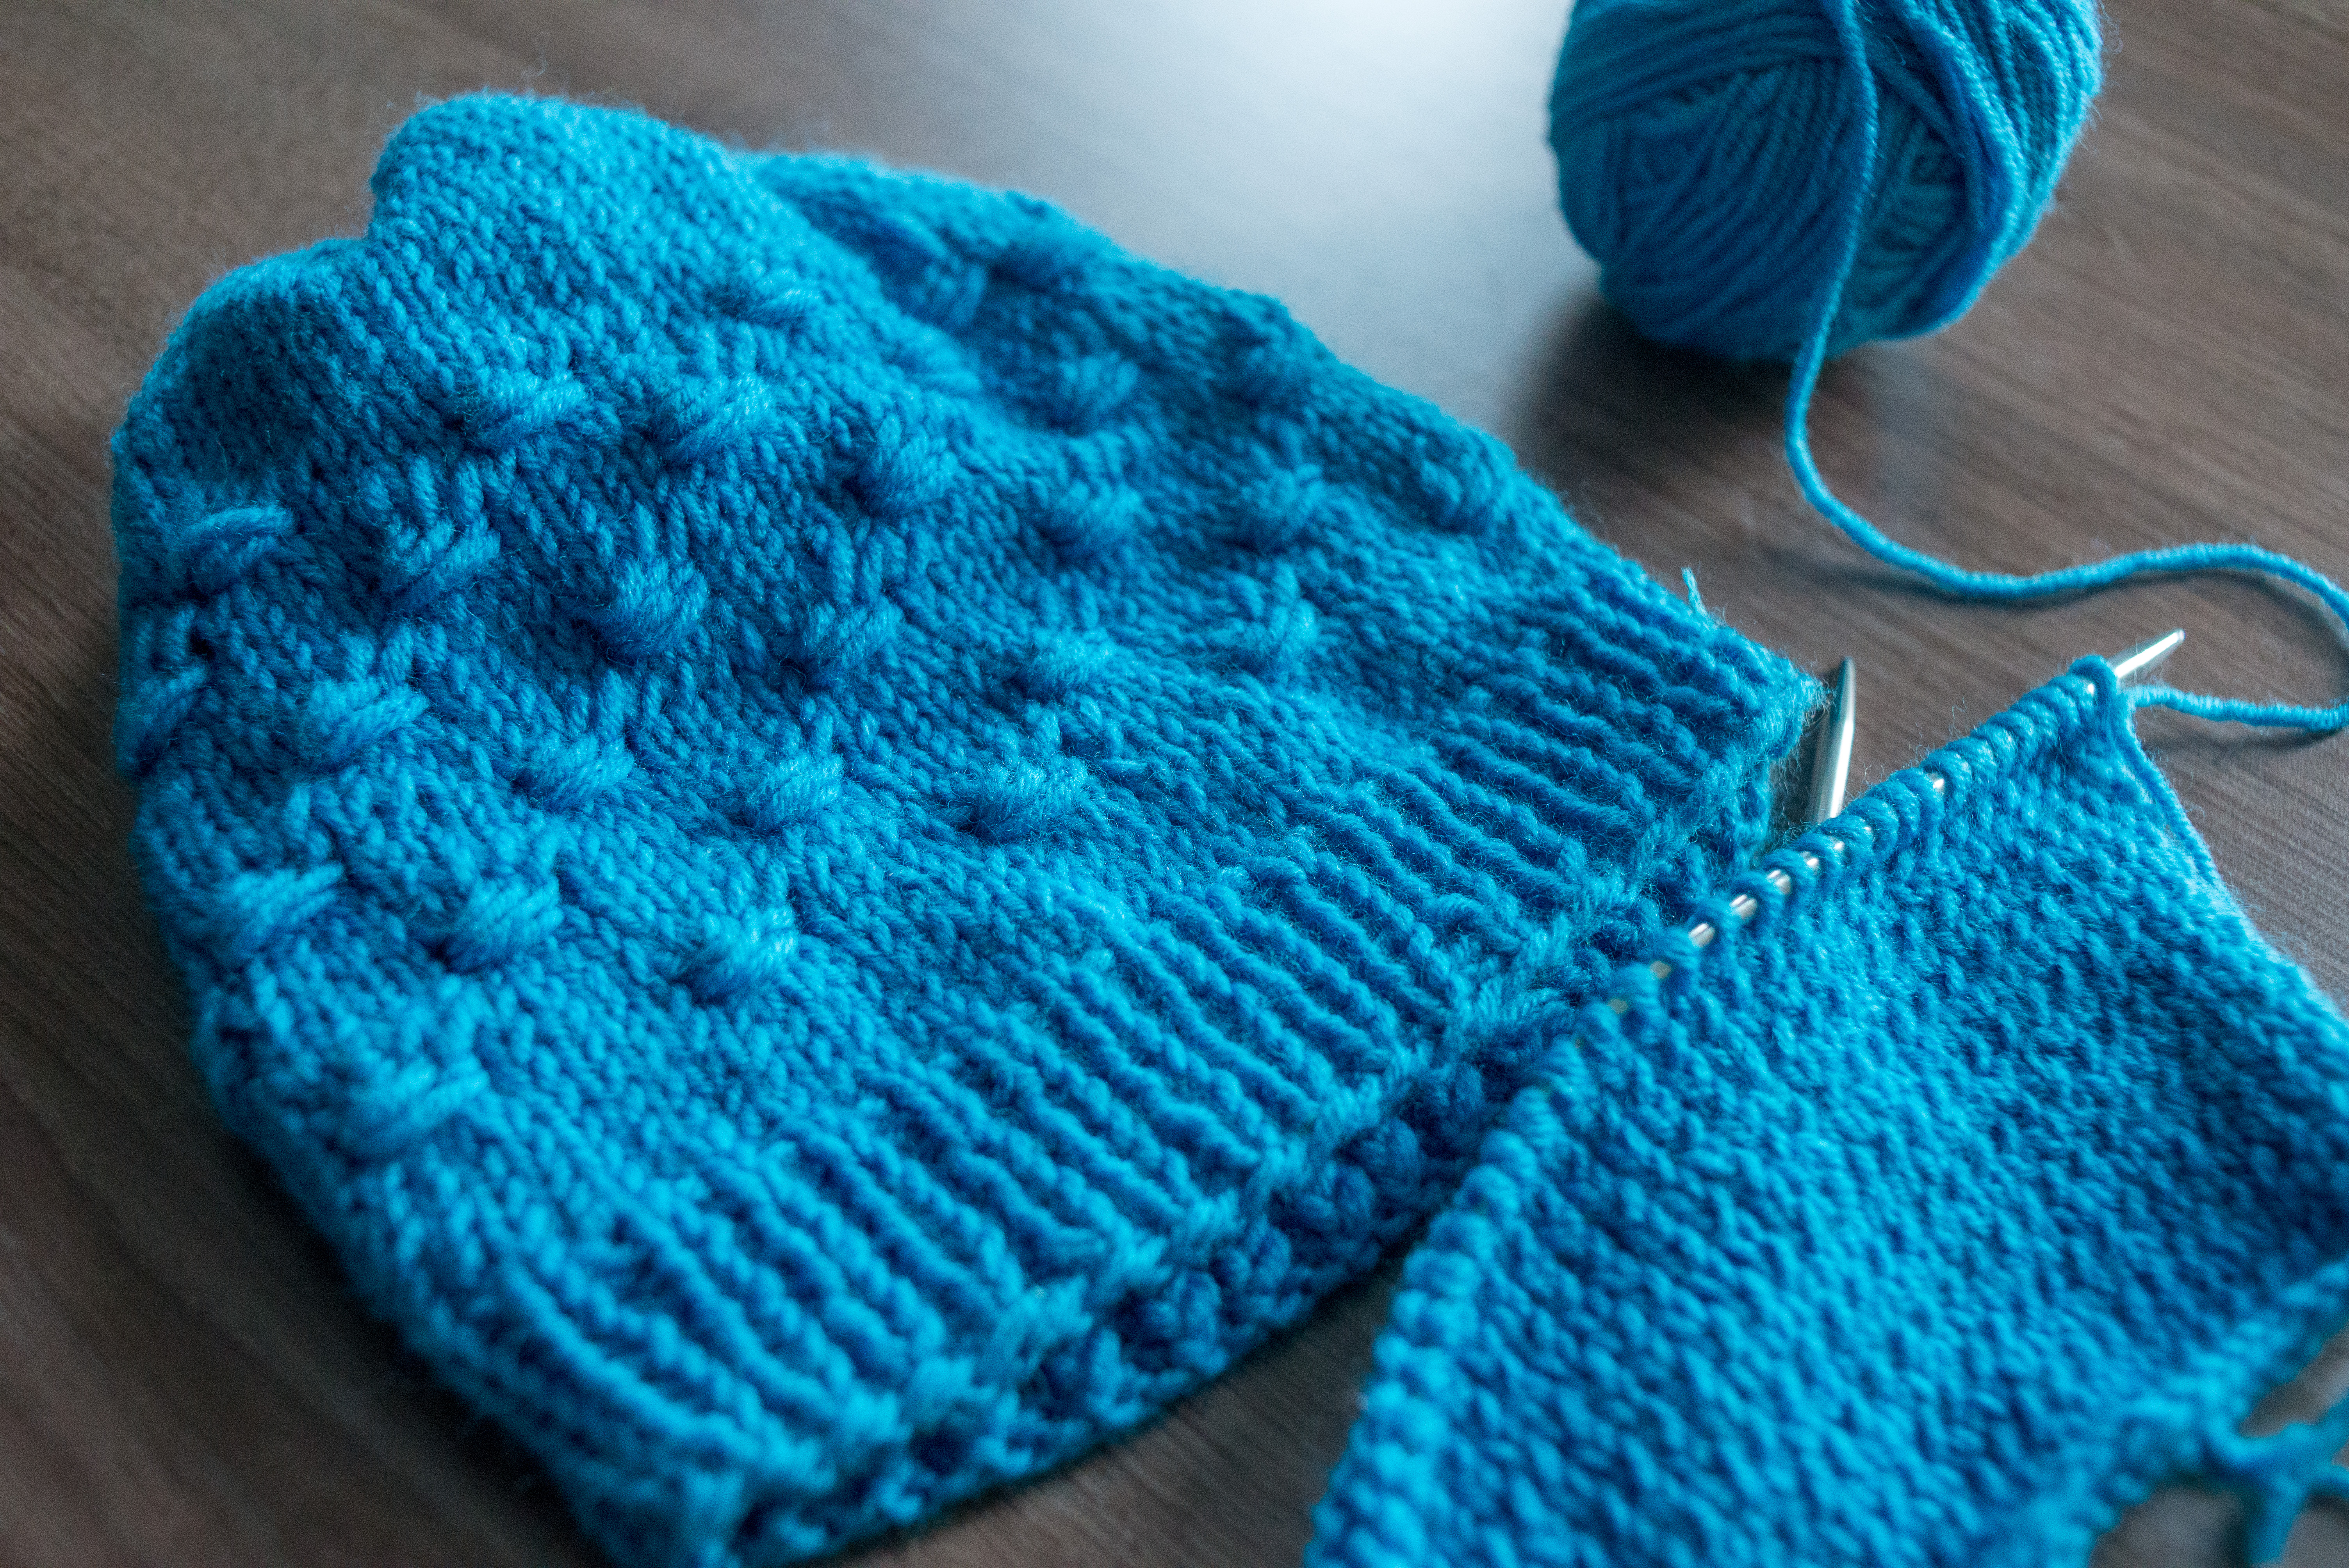 The Paw hat – a free knitting pattern